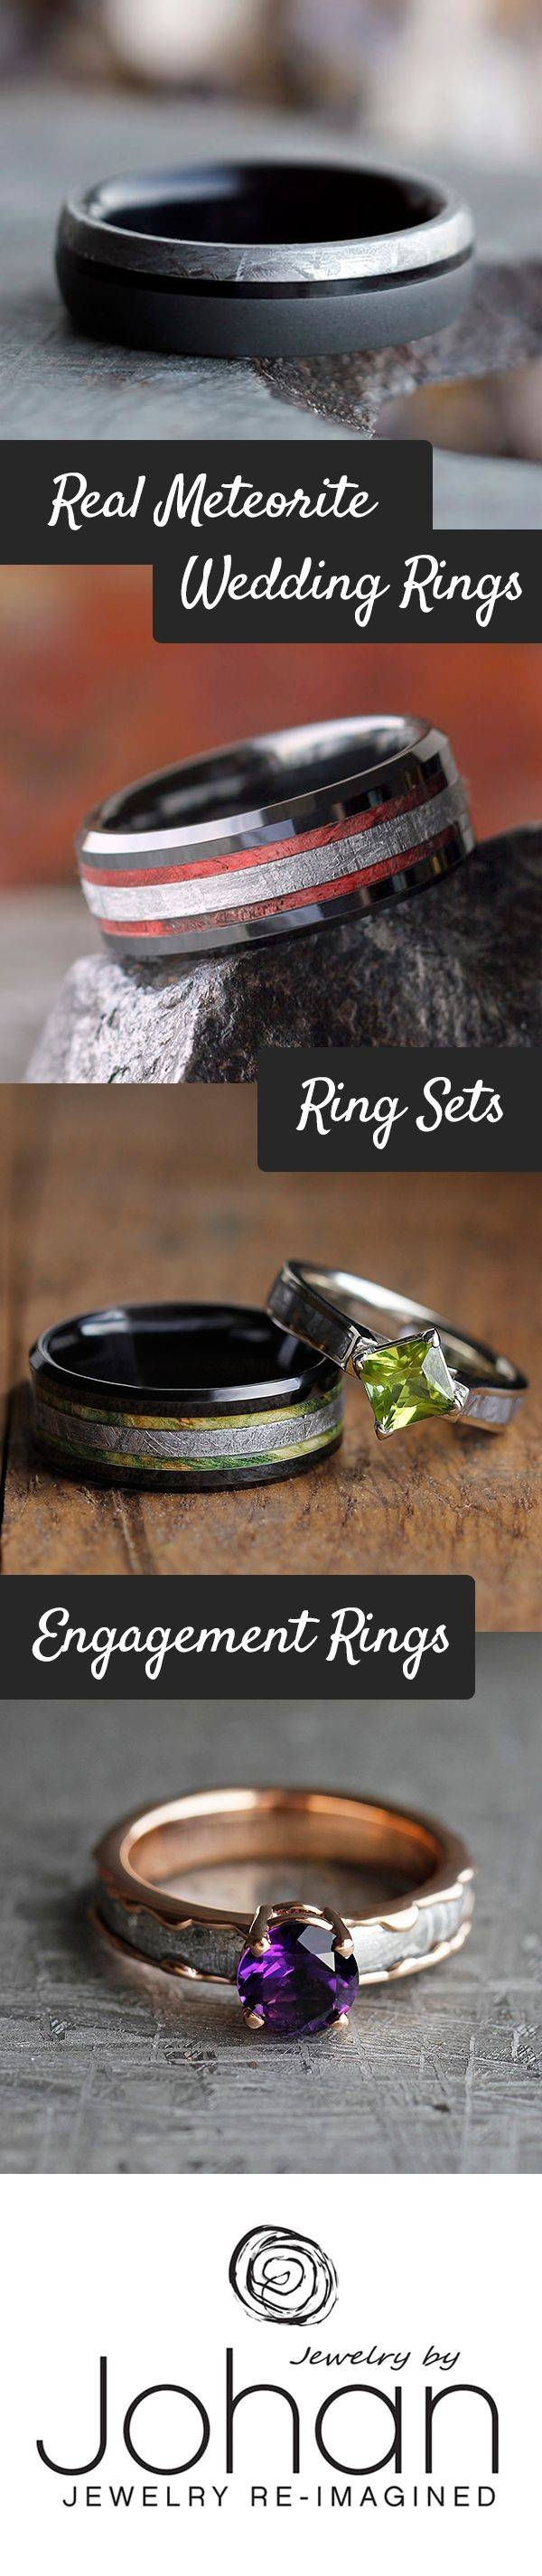 Best 25+ Meteorite Ring Ideas On Pinterest | Meteorite Wedding Pertaining To Men's Wedding Bands Materials (View 3 of 15)